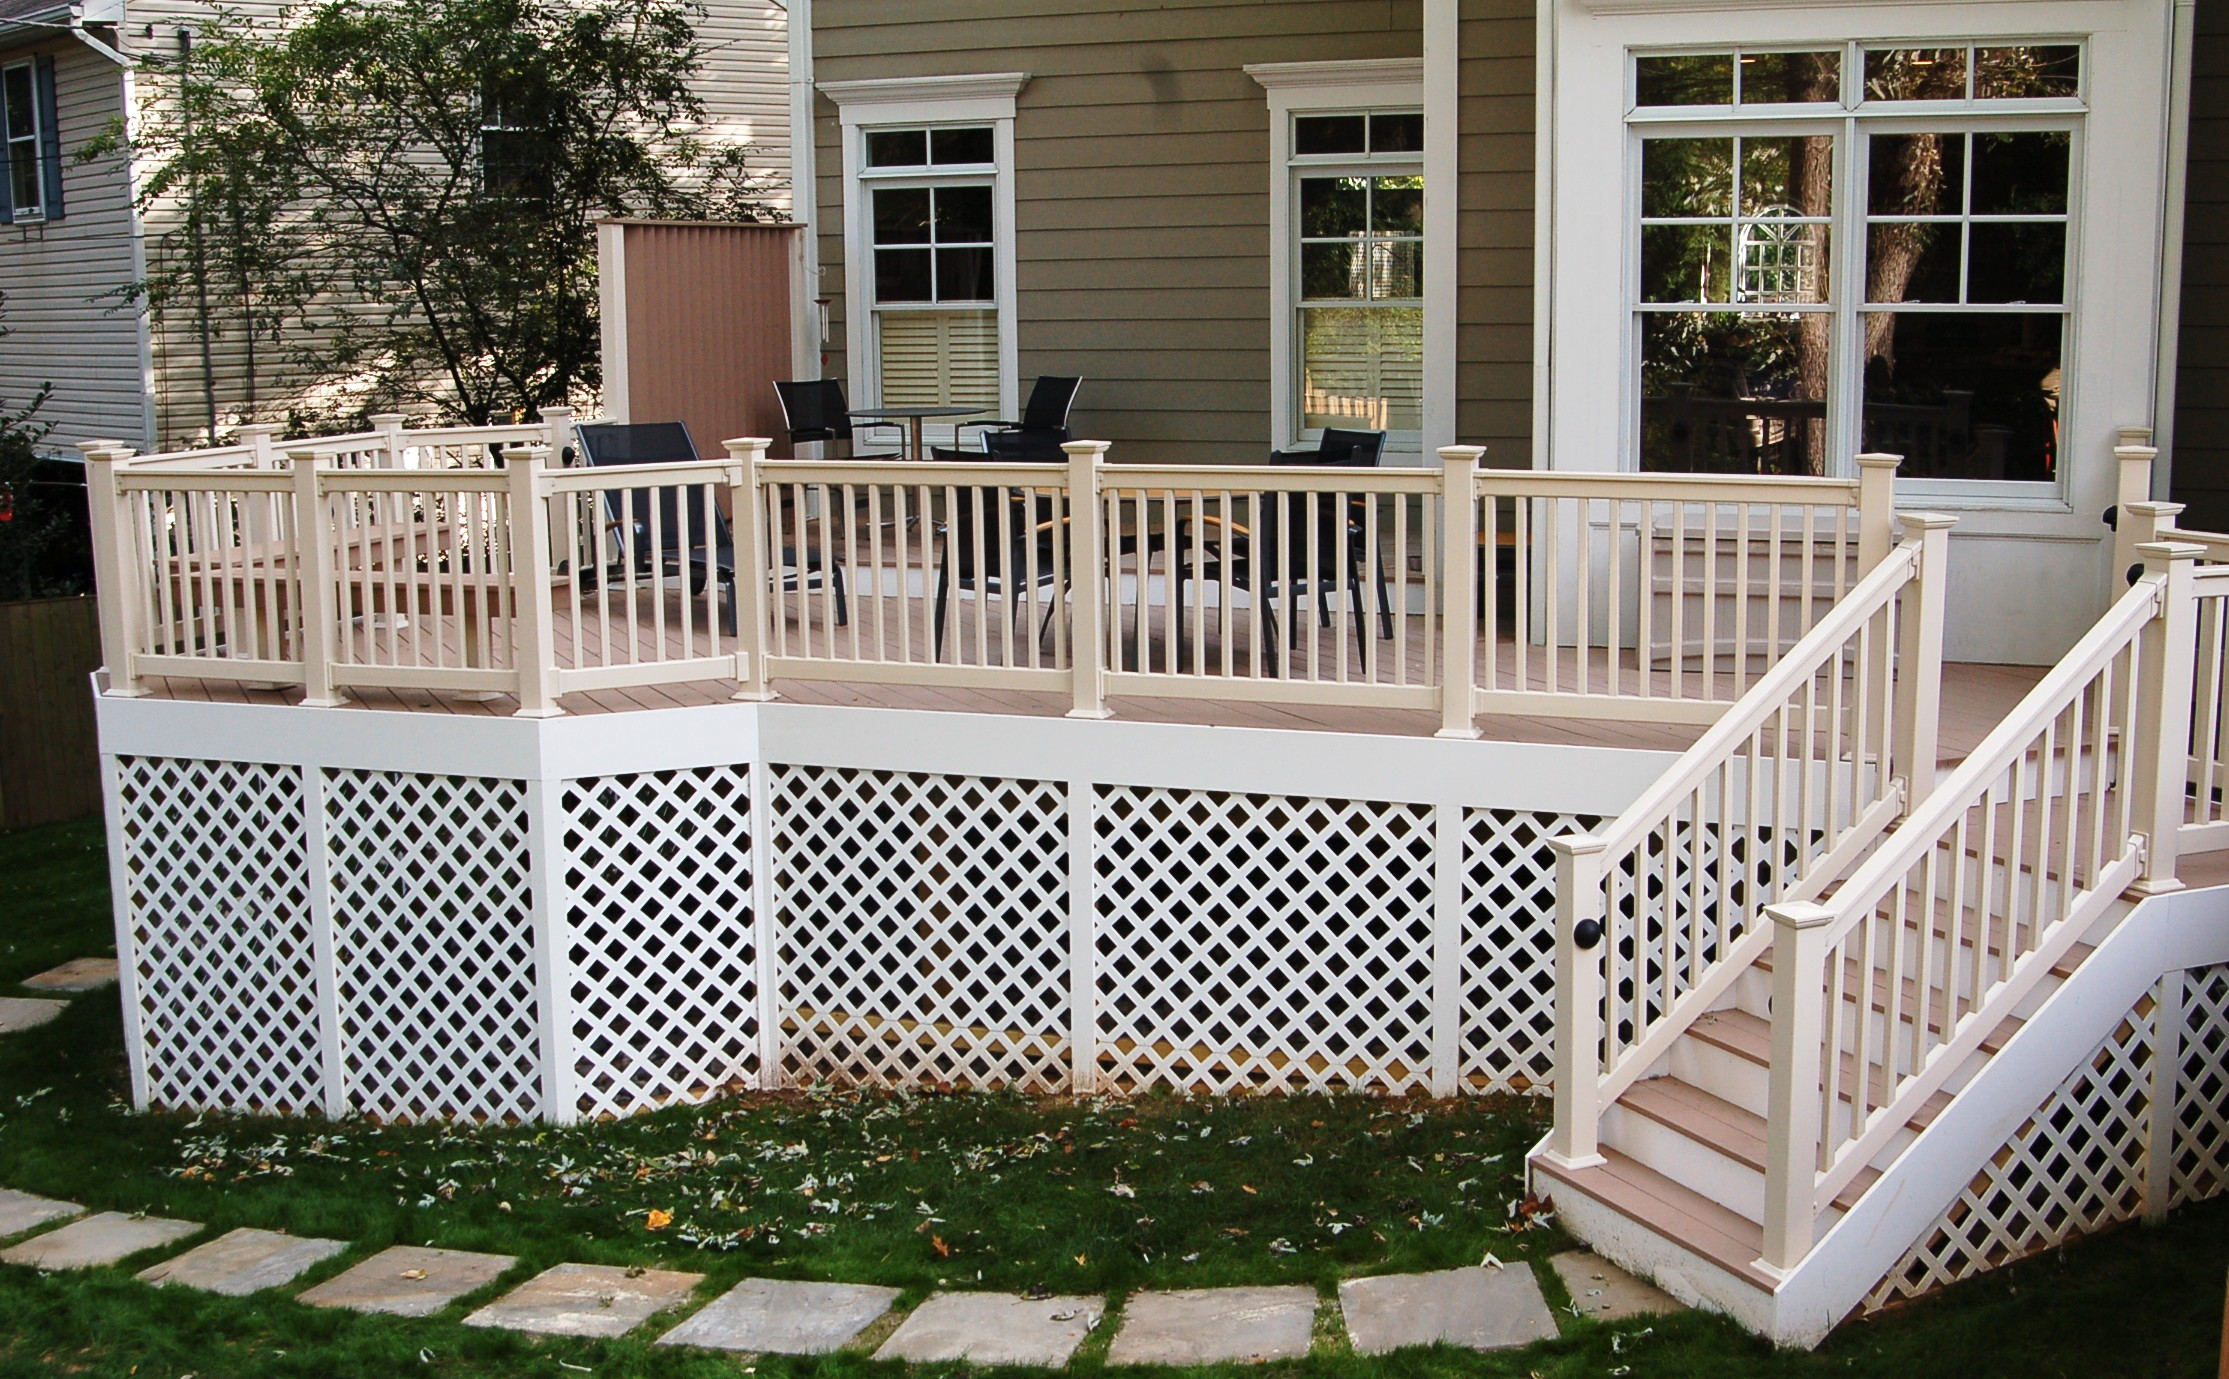 Pvc Deck Installation In Bethesda Maryland Using Azek